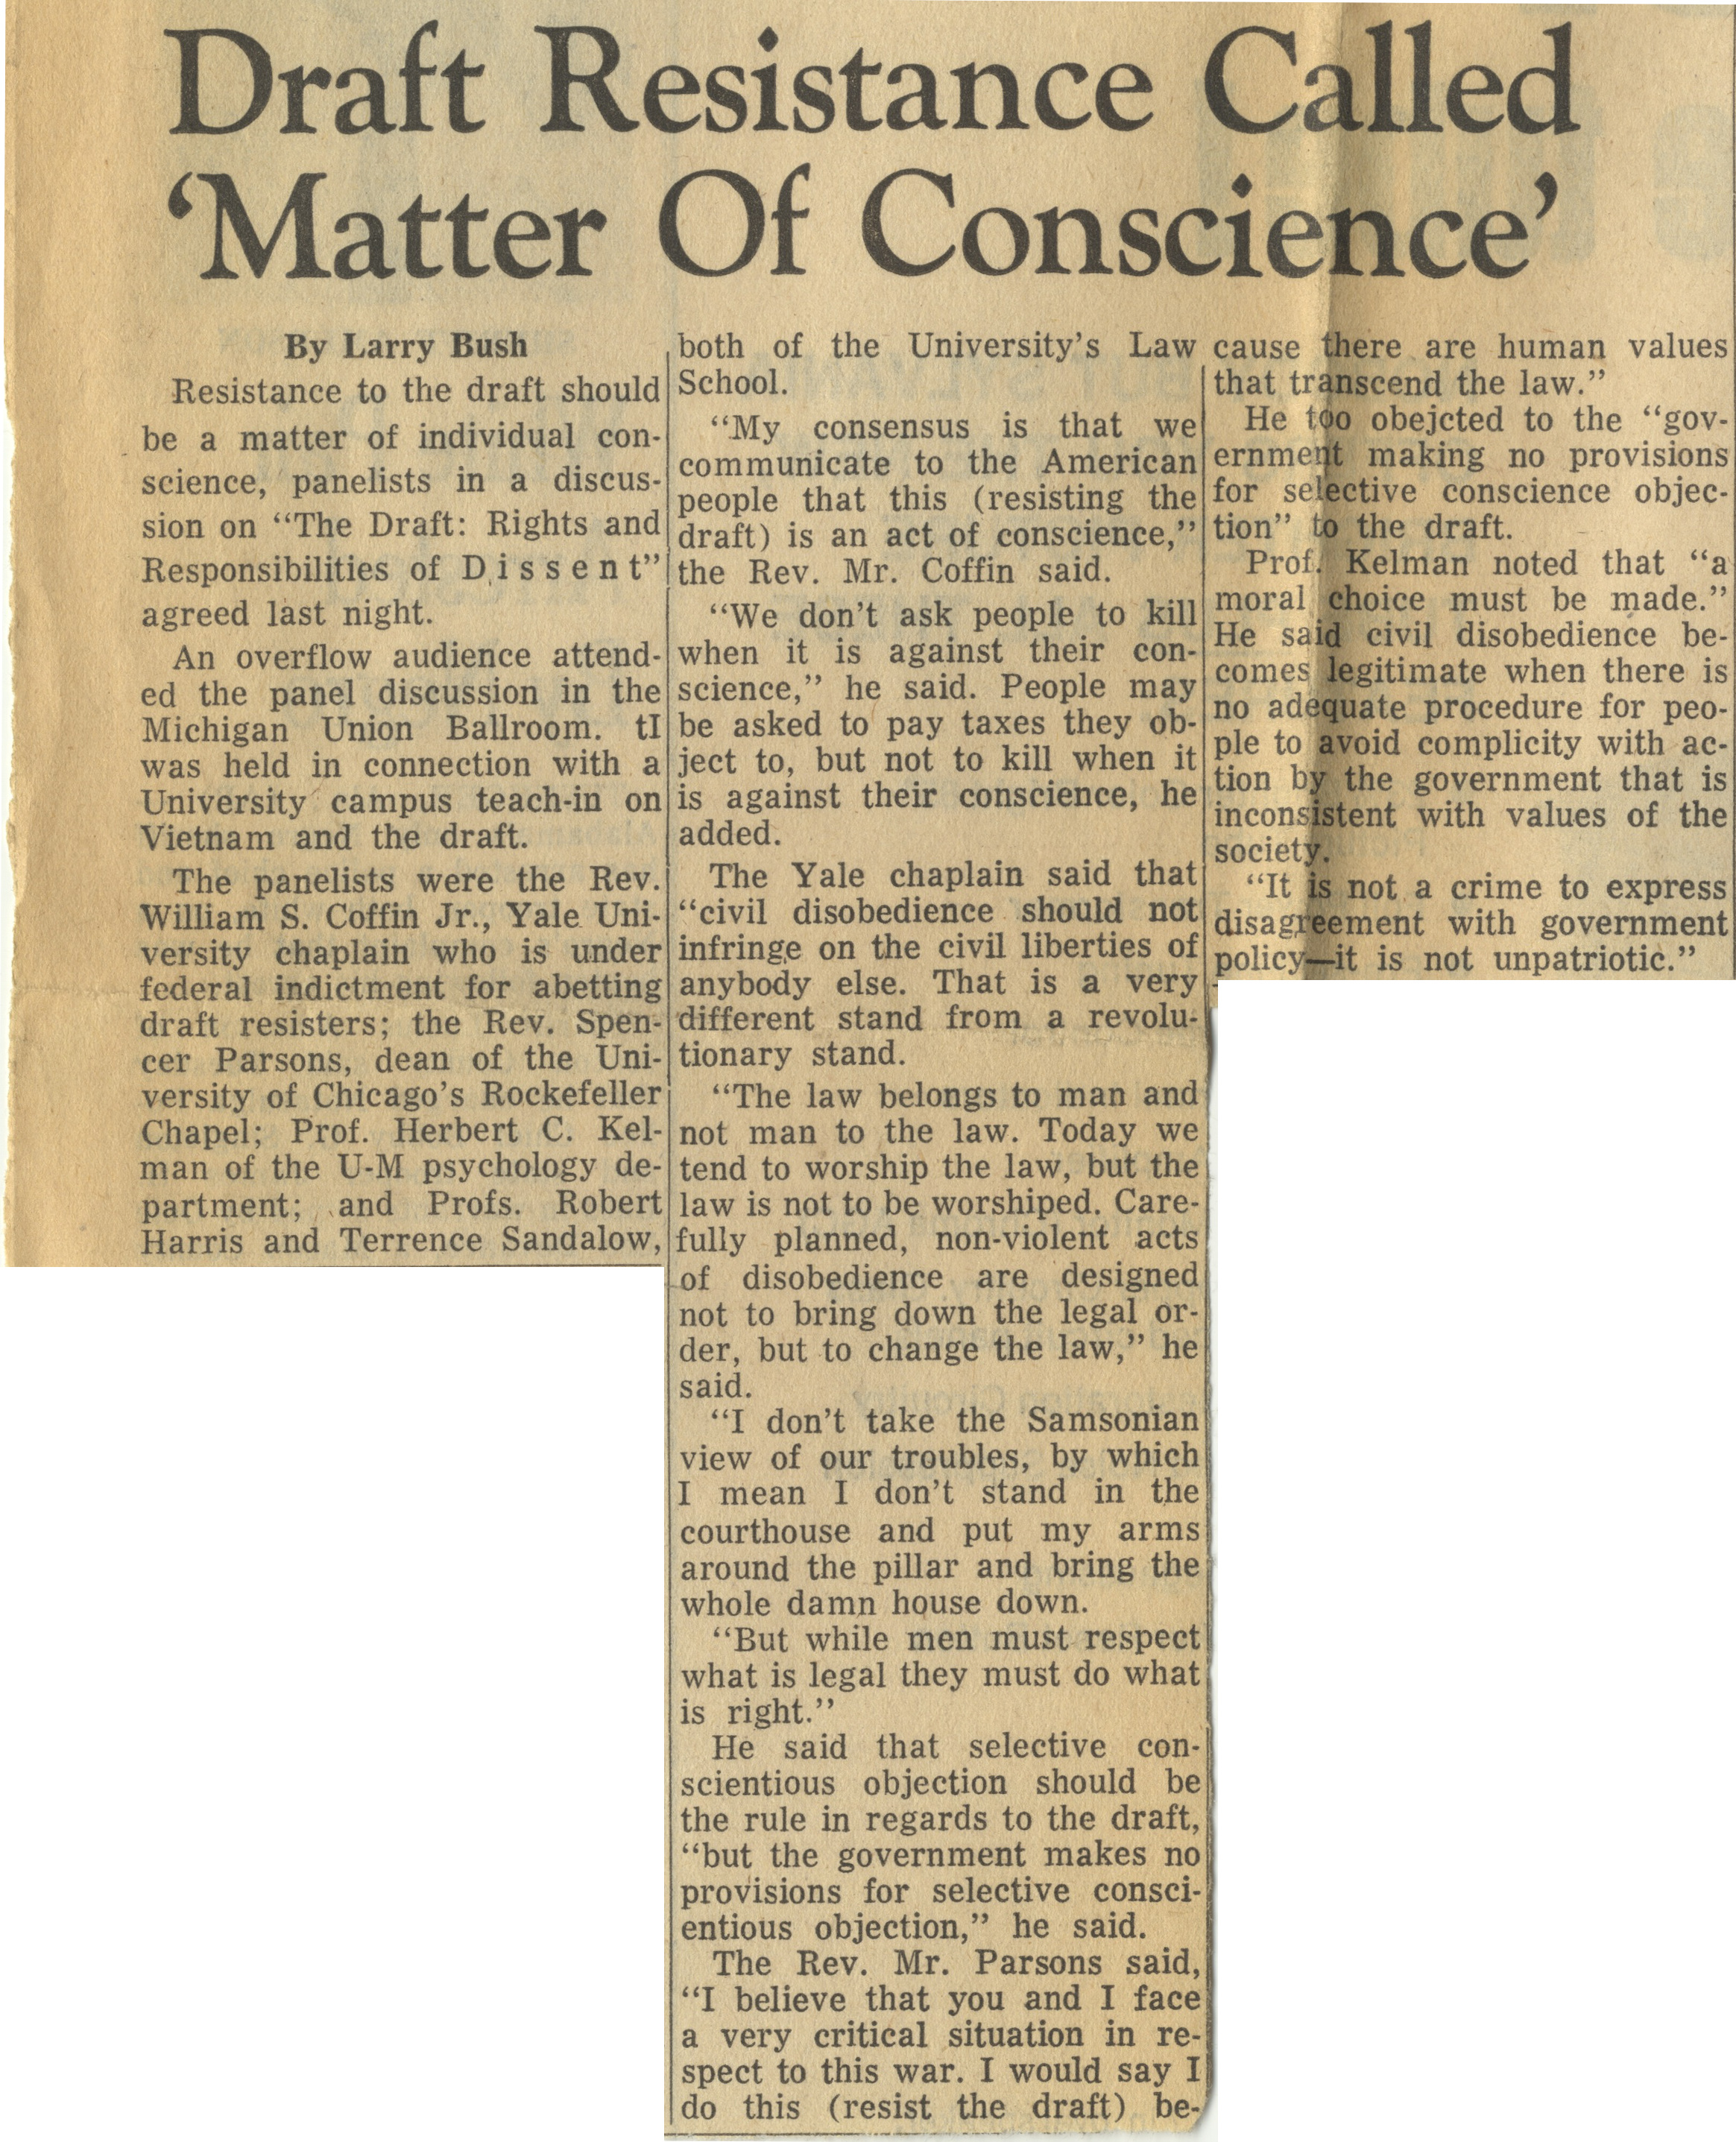 Draft Resistance Called 'Matter Of Conscience' image